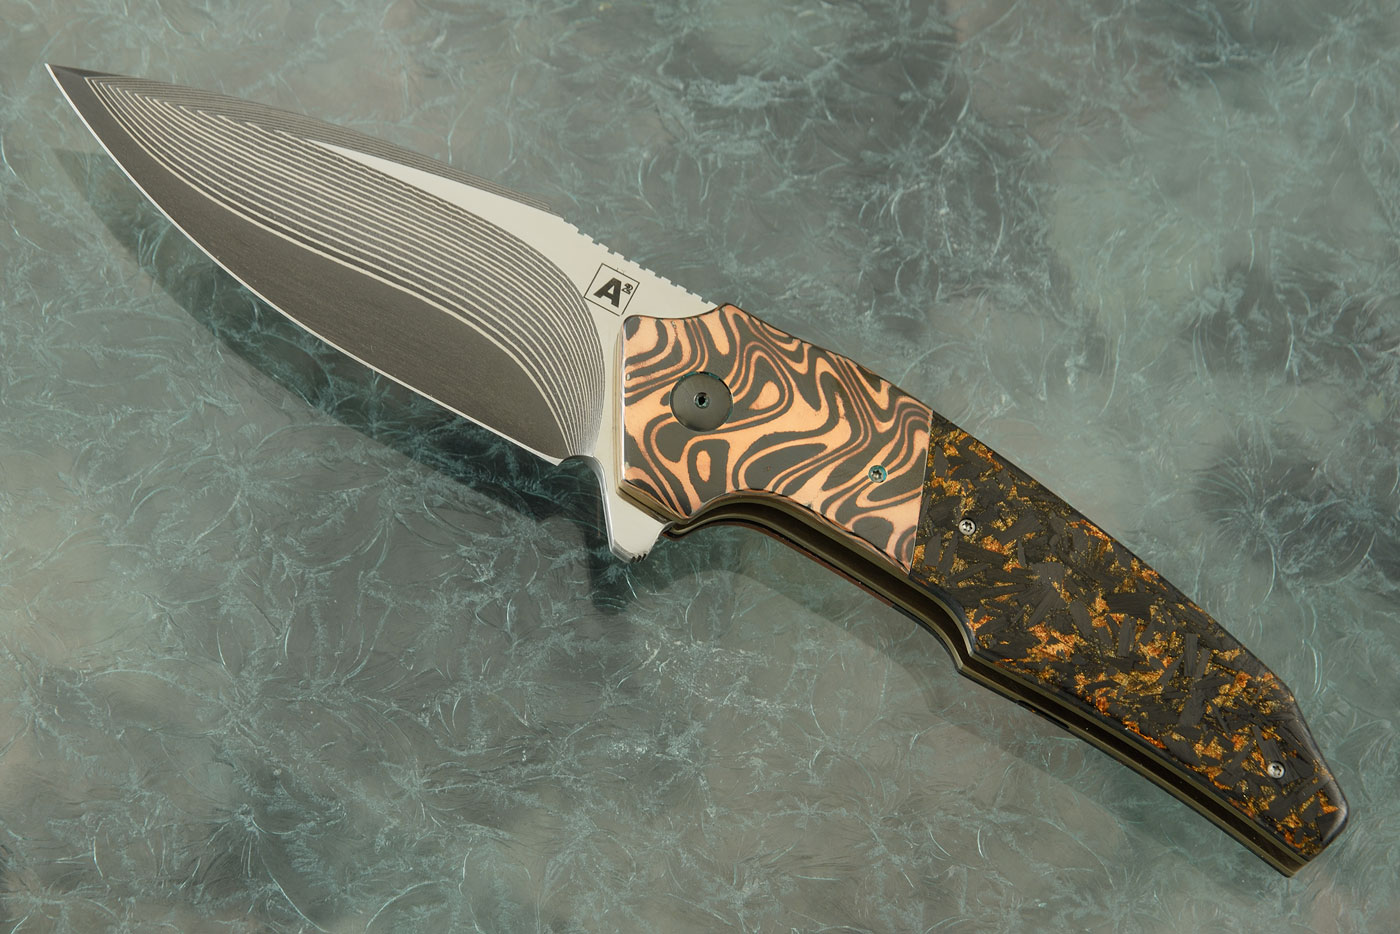 A6 Dress Flipper with Copper Shred Carbon Fiber, CuZr and SG2 Damascus San Mai (Ceramic IKBS)